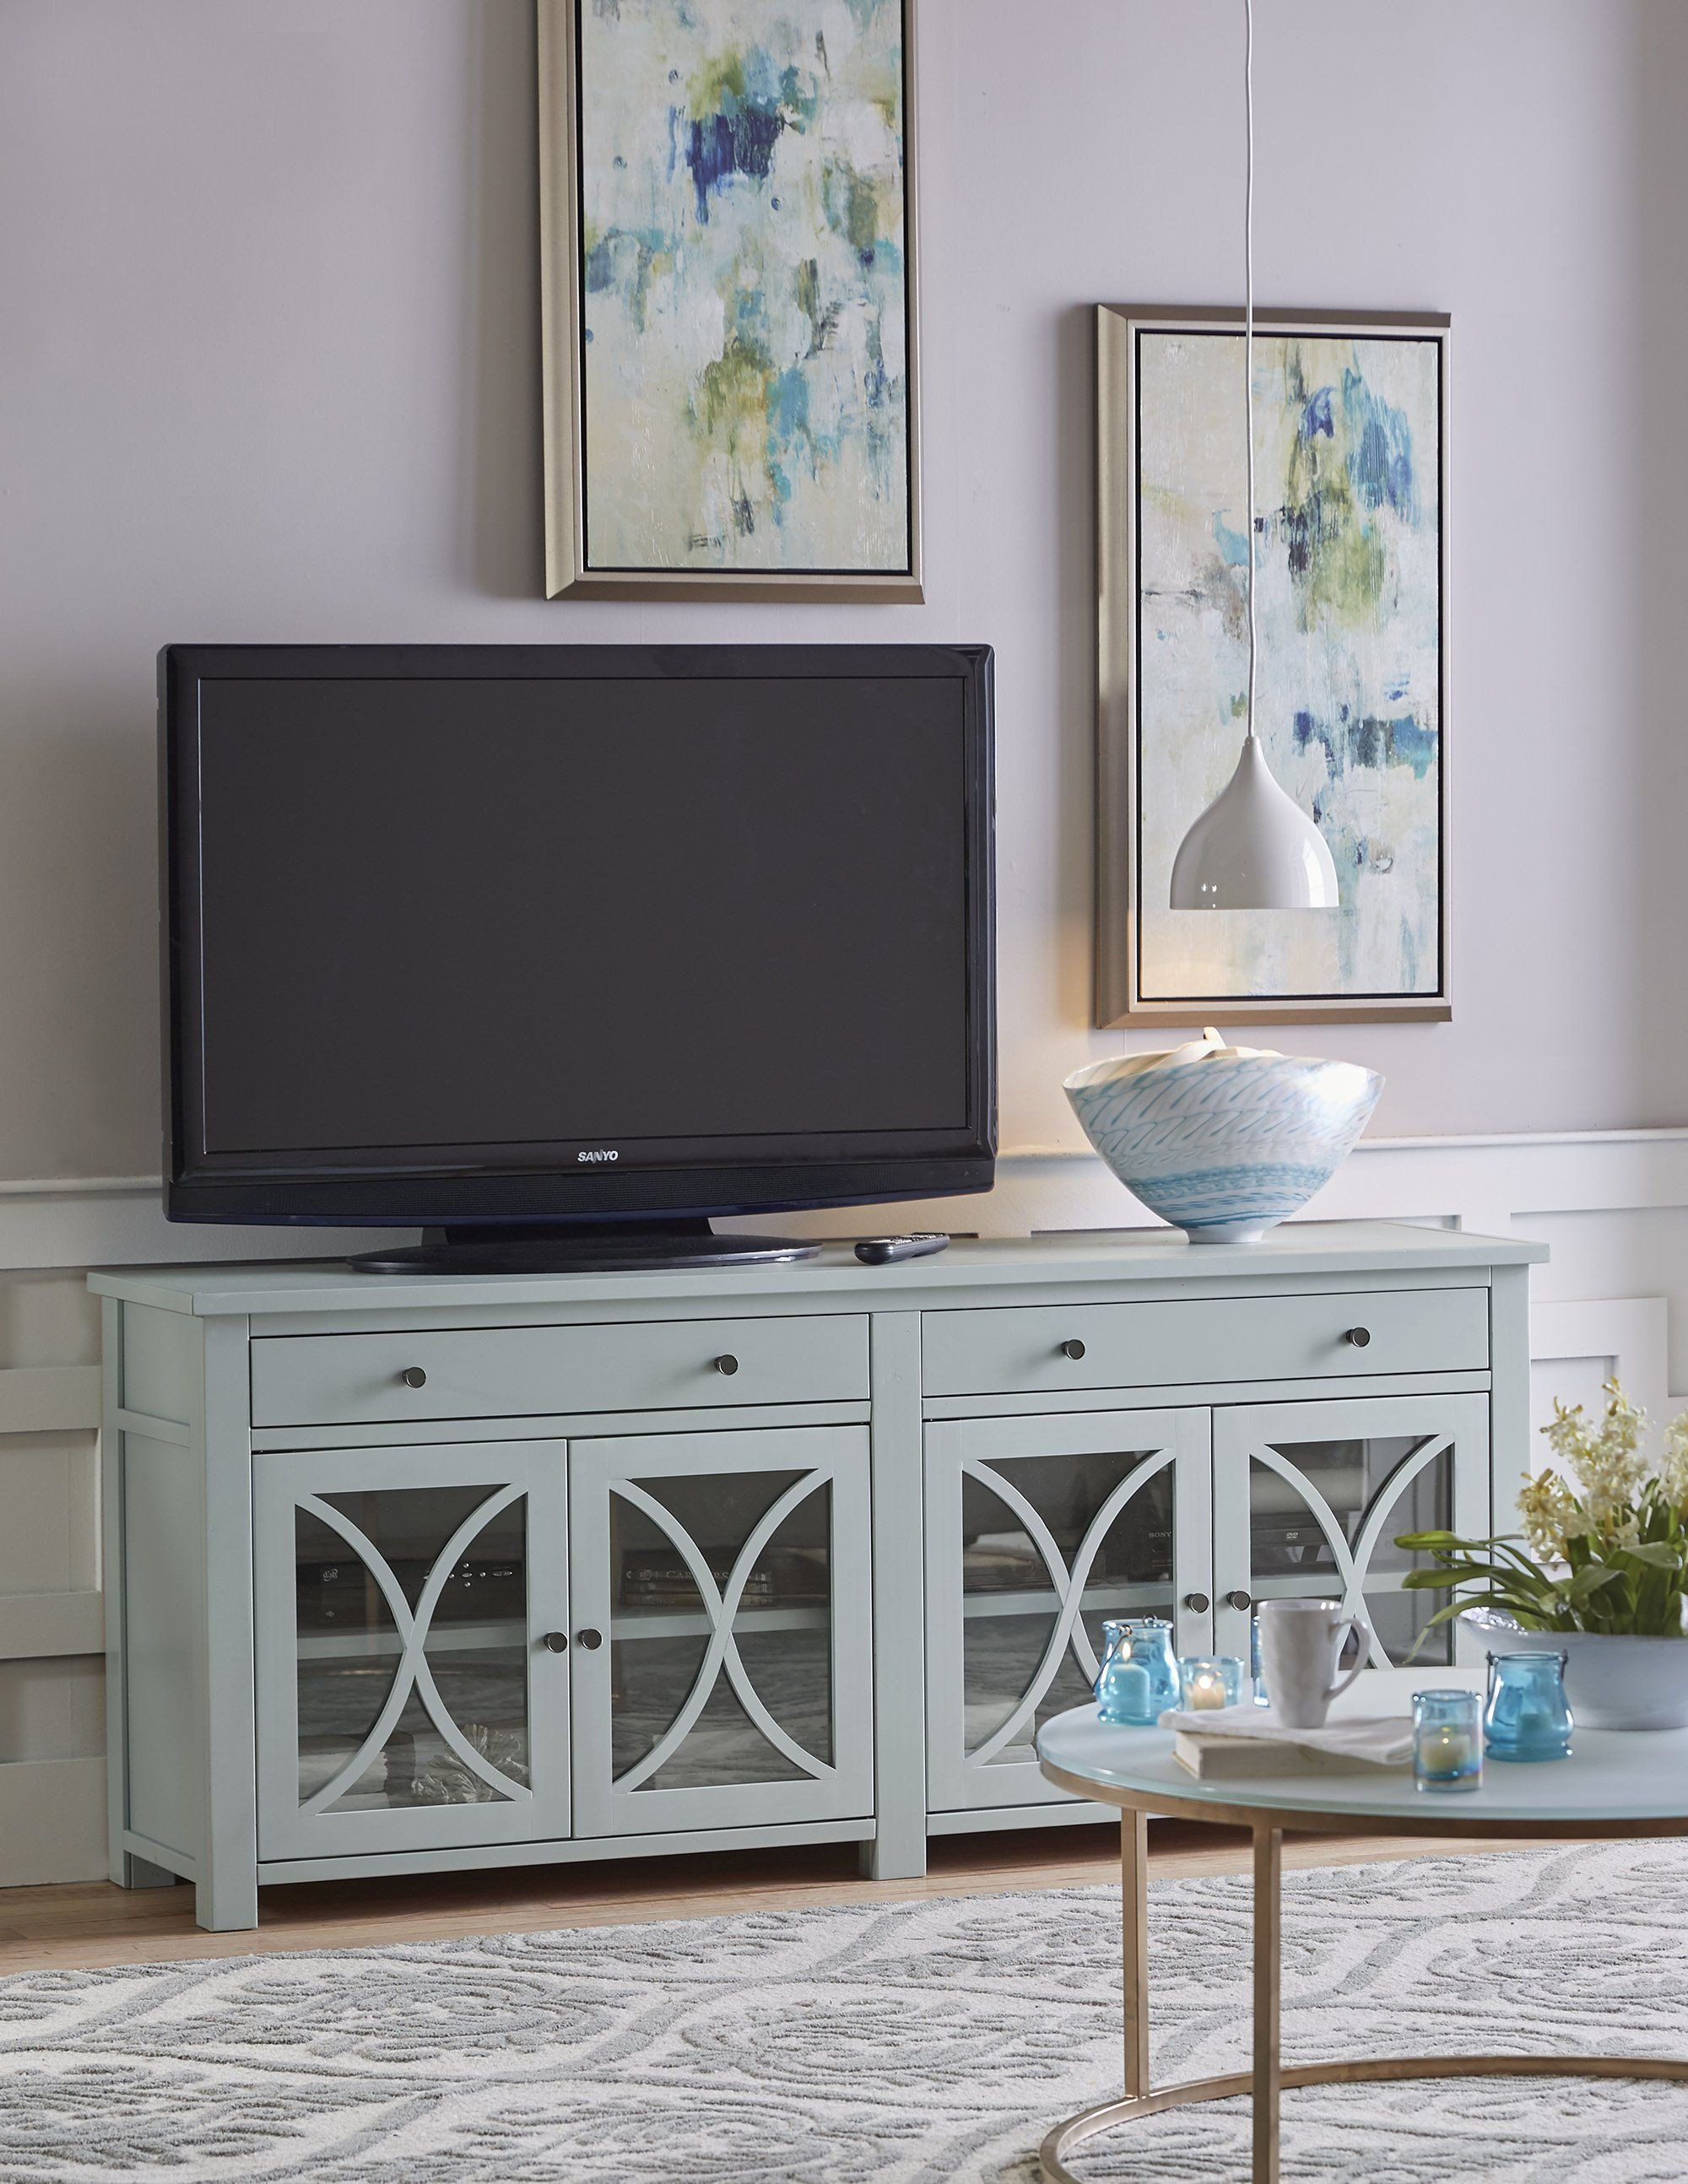 Good Size Tv for Bedroom Fresh Salinas Tv Console Choose Size